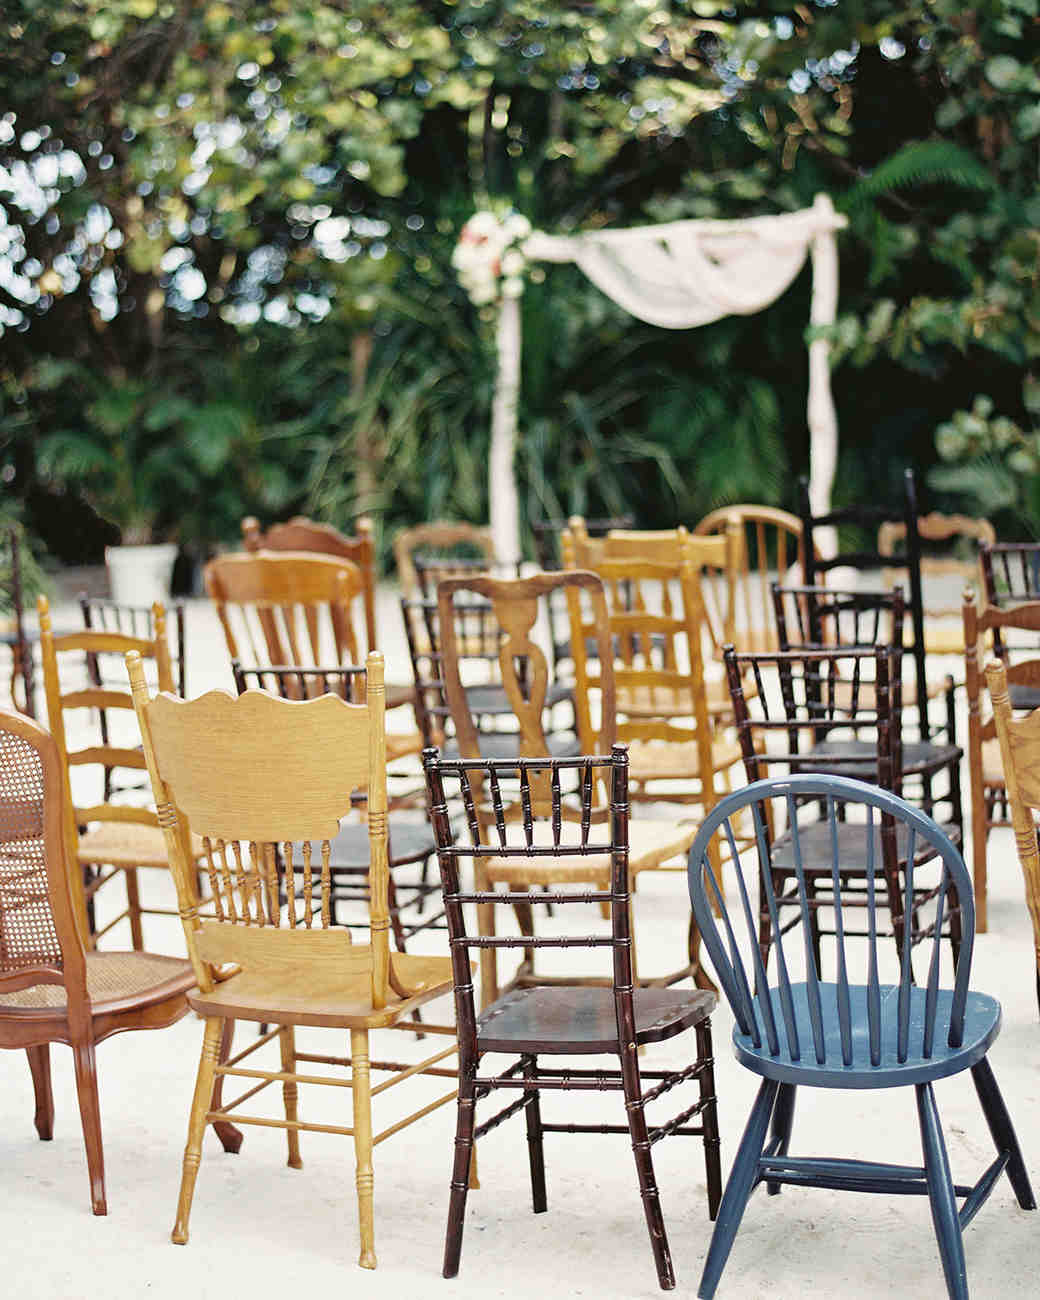 wedding-trends-2015-mismatched-chairs-1215.jpg